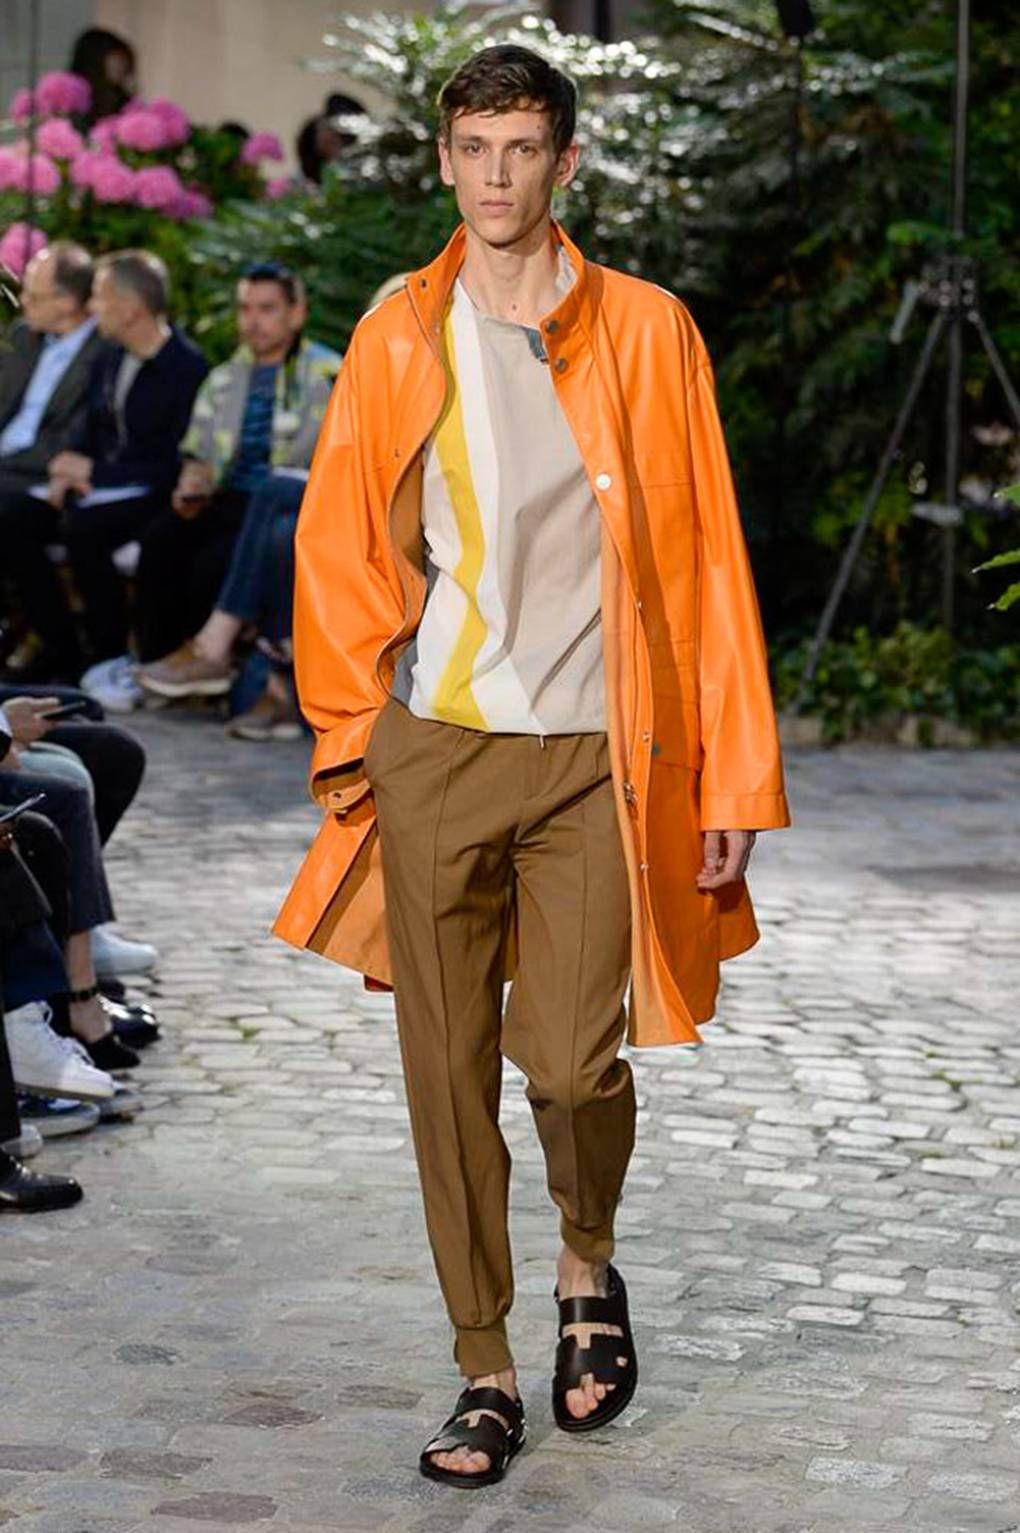 Hermes SpringSummer 2019 RTW Plays With Pops of Colors Fine Tailoring pictures